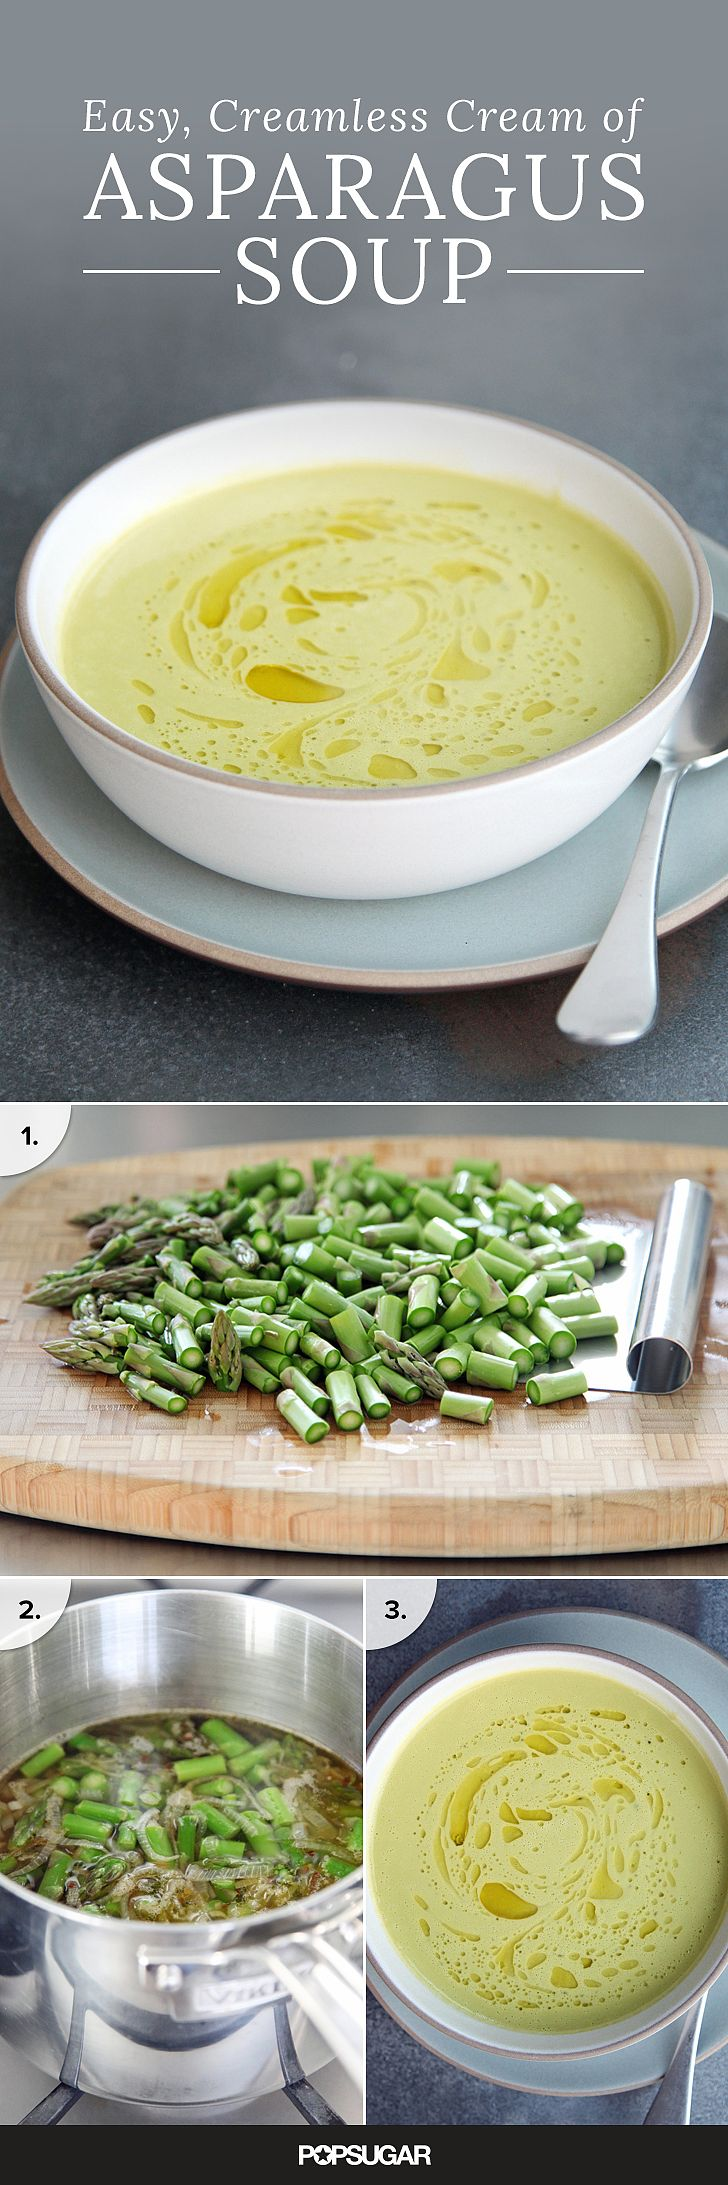 Instead of burying the flavor of asparagus under a blanket of cream, this delicate soup is subtly enriched with a less-expected ingredient: Greek yogurt. This simple swap is less about lightening things up and more about bringing asparagus's green, vegetal quality to the fore. (Its modest calorie count is a happy coincidence.)